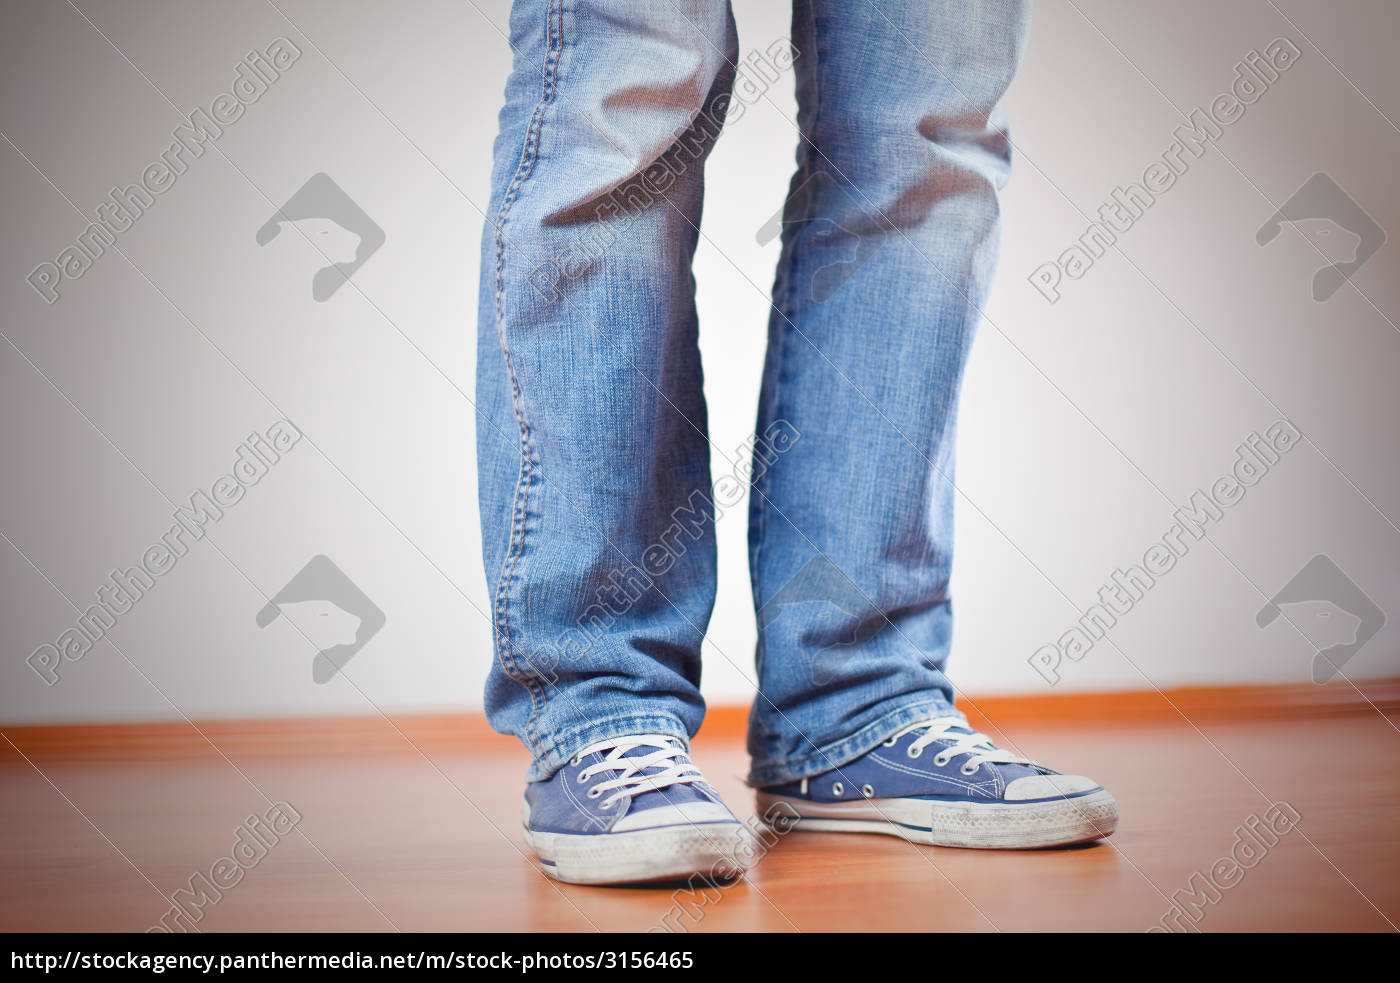 human, foot, with, jeans, and, sneakers - 3156465